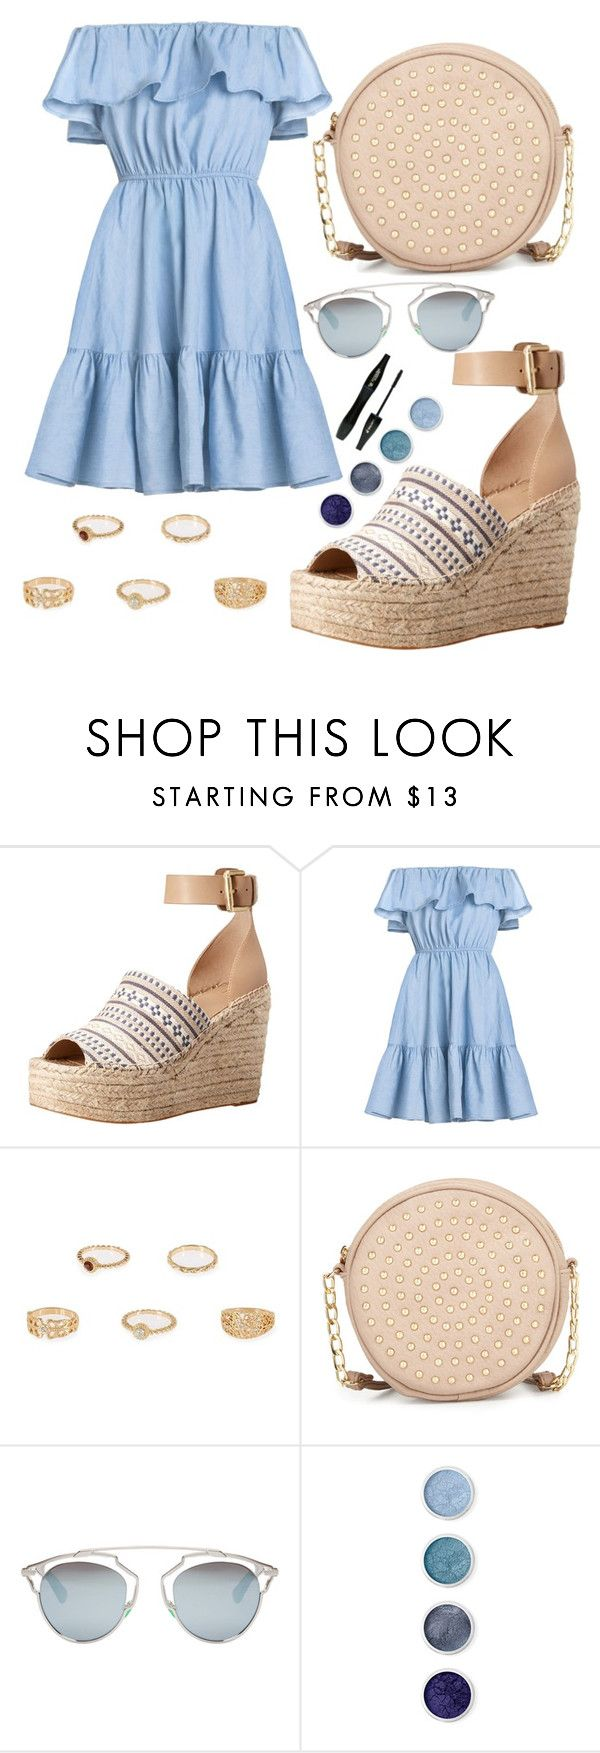 """Untitled #62"" by foreveritaly ❤ liked on Polyvore featuring Marc Fisher LTD, River Island, Neiman Marcus, Christian Dior, Terre Mère and Lancôme"